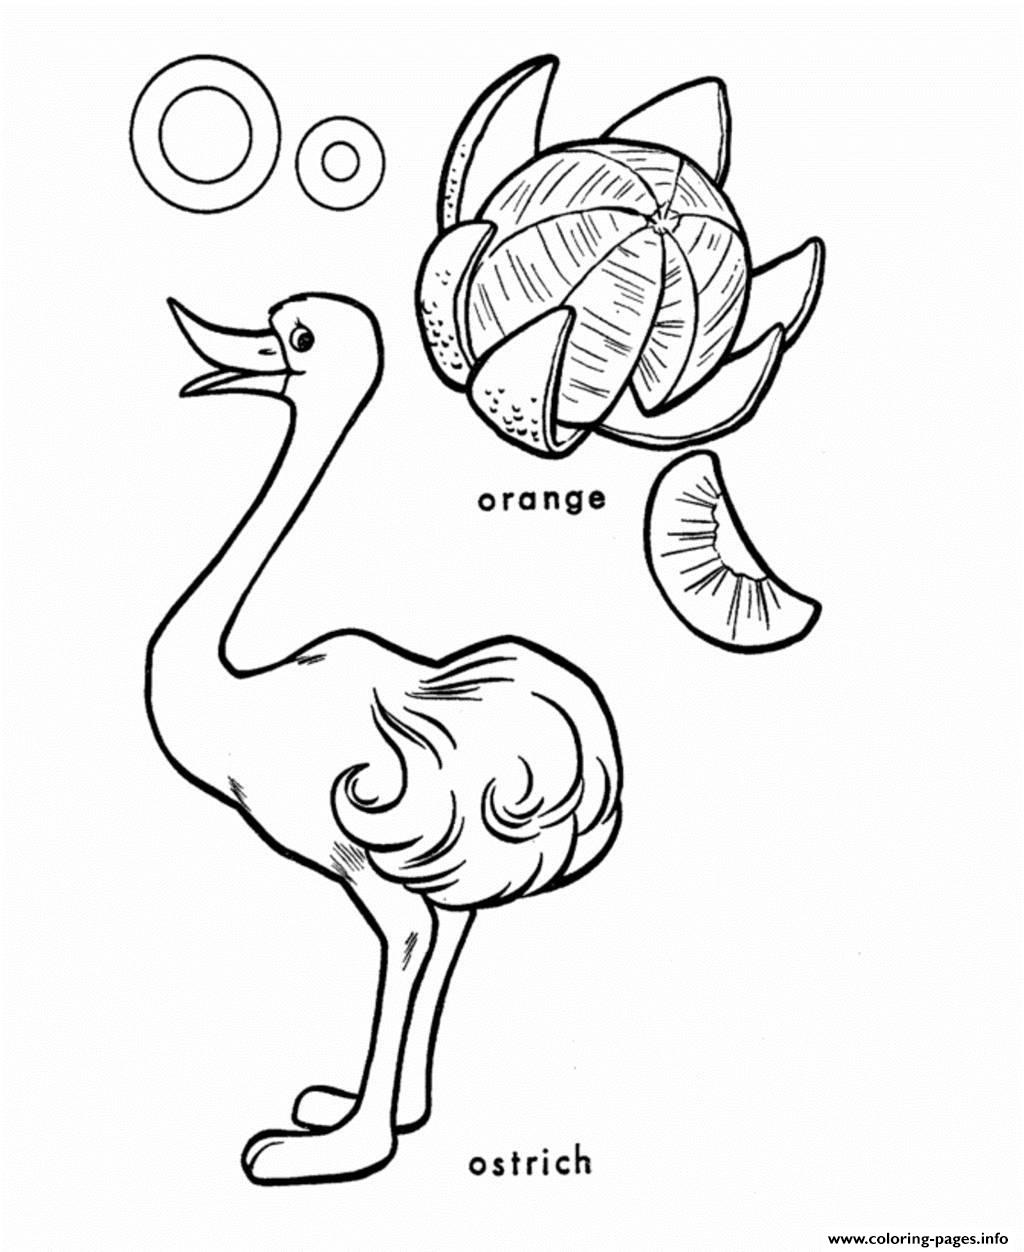 Alphabet S O Words57f5 Coloring Pages Printable